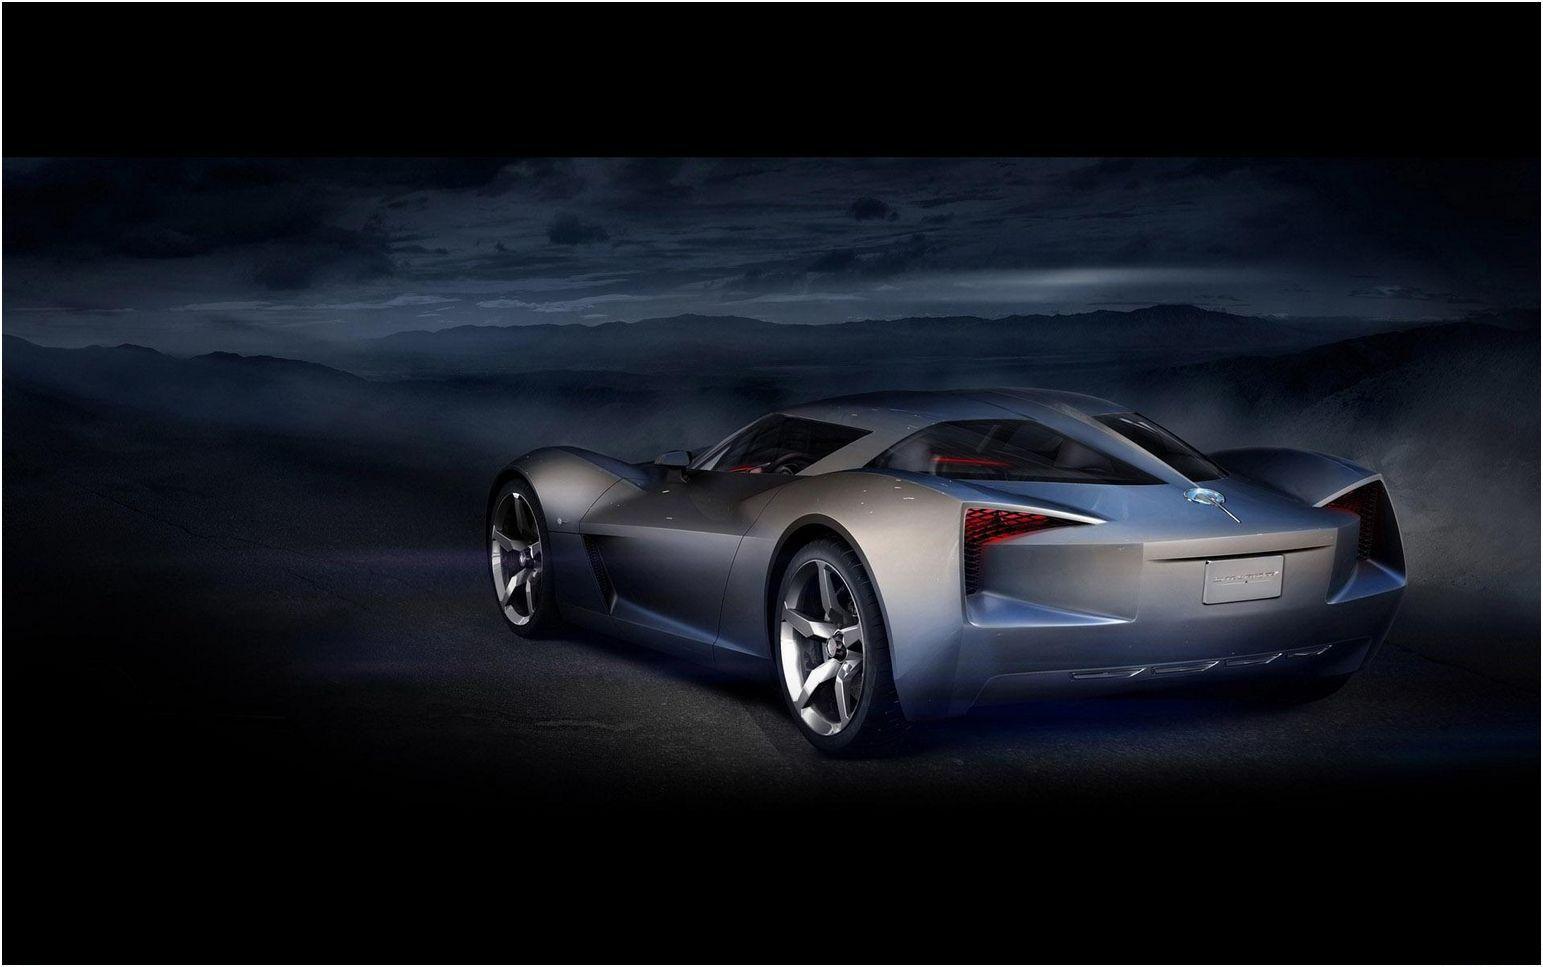 Futuristic Car Wallpaper Autos Faxo